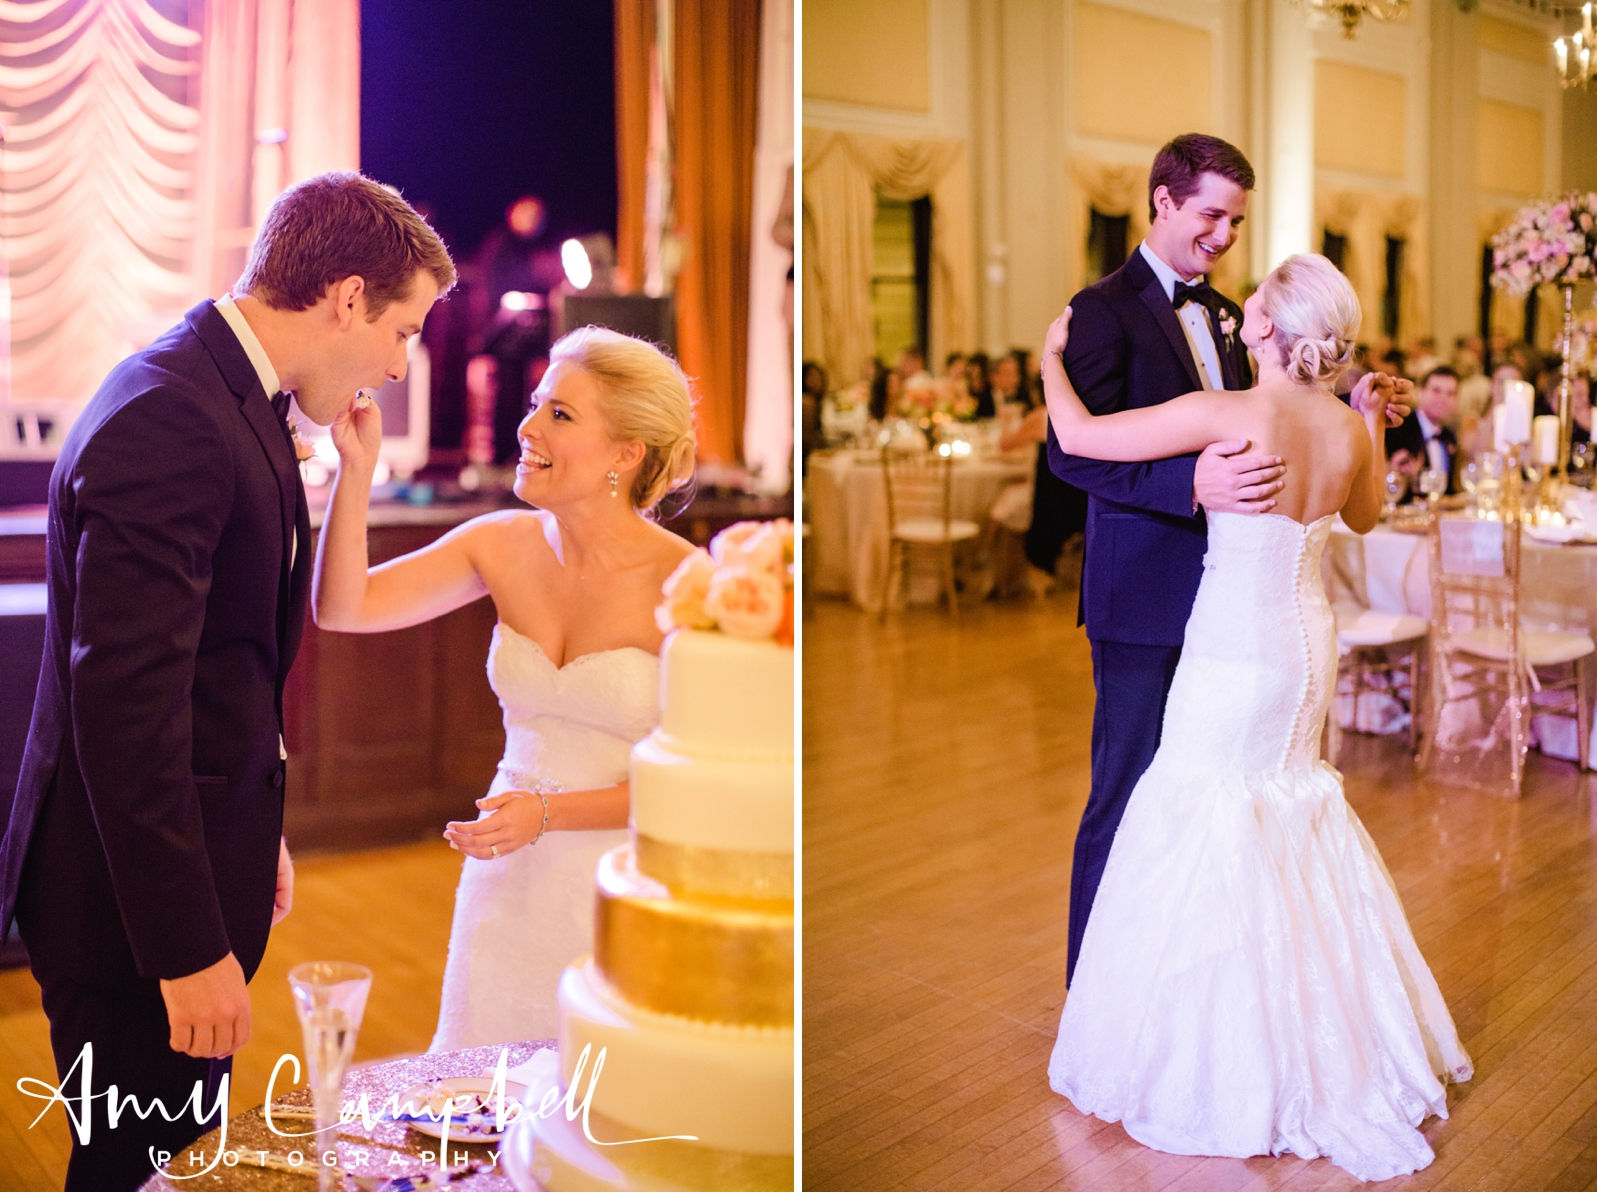 chelseamike_wedss_pics_amycampbellphotography_131.jpg